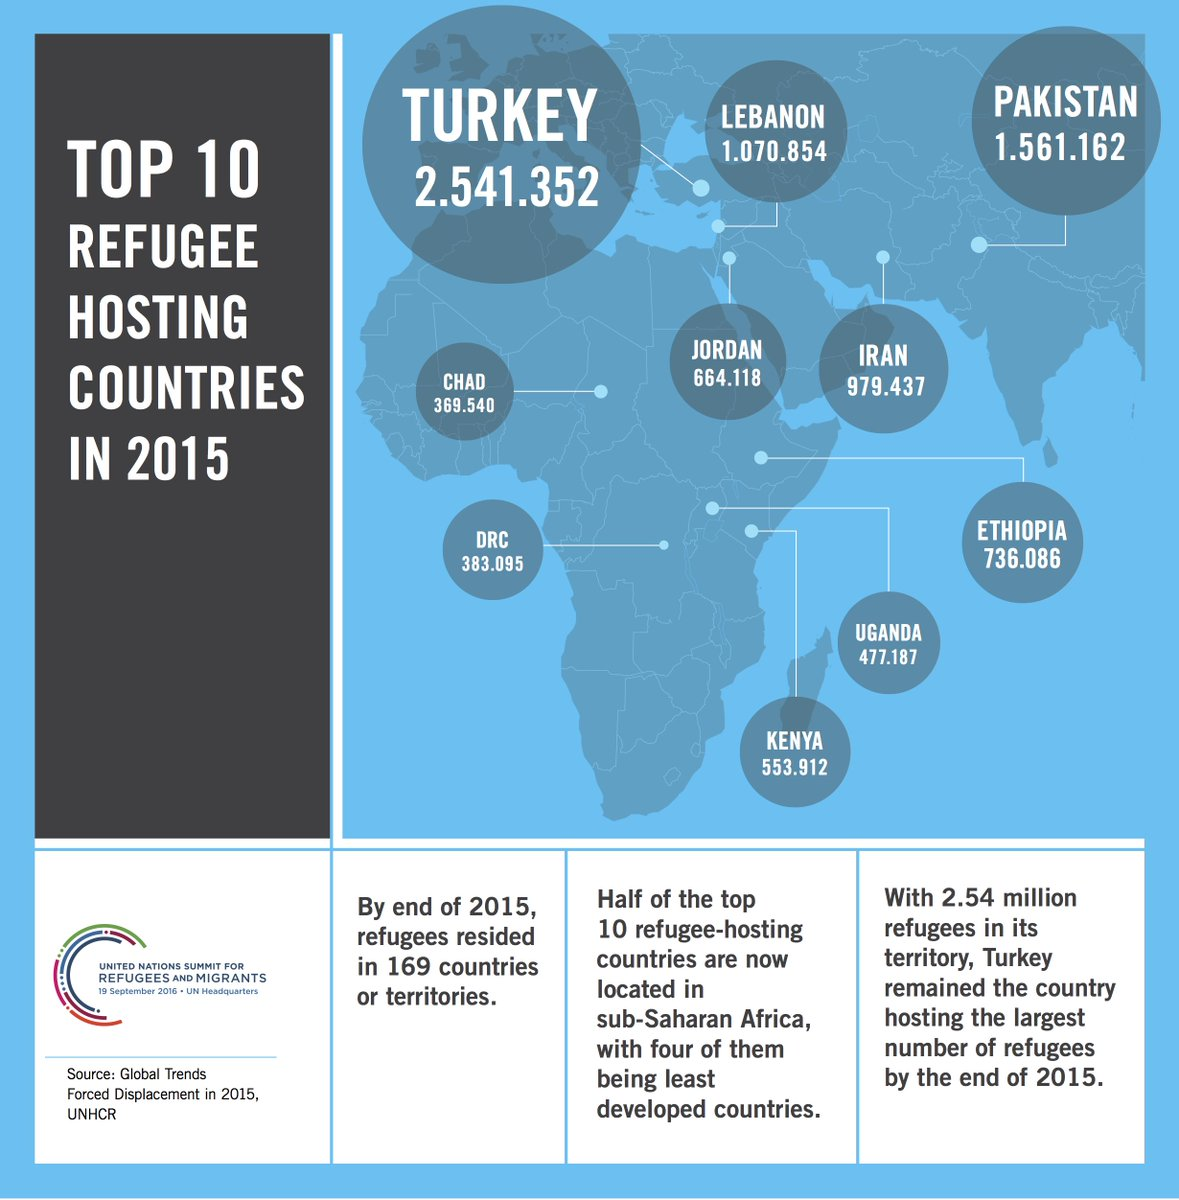 It is a mistake to think that developed countries shelter most of the refugees in the world #UN4RefugeesMigrants https://t.co/mYPcyA0Q3N